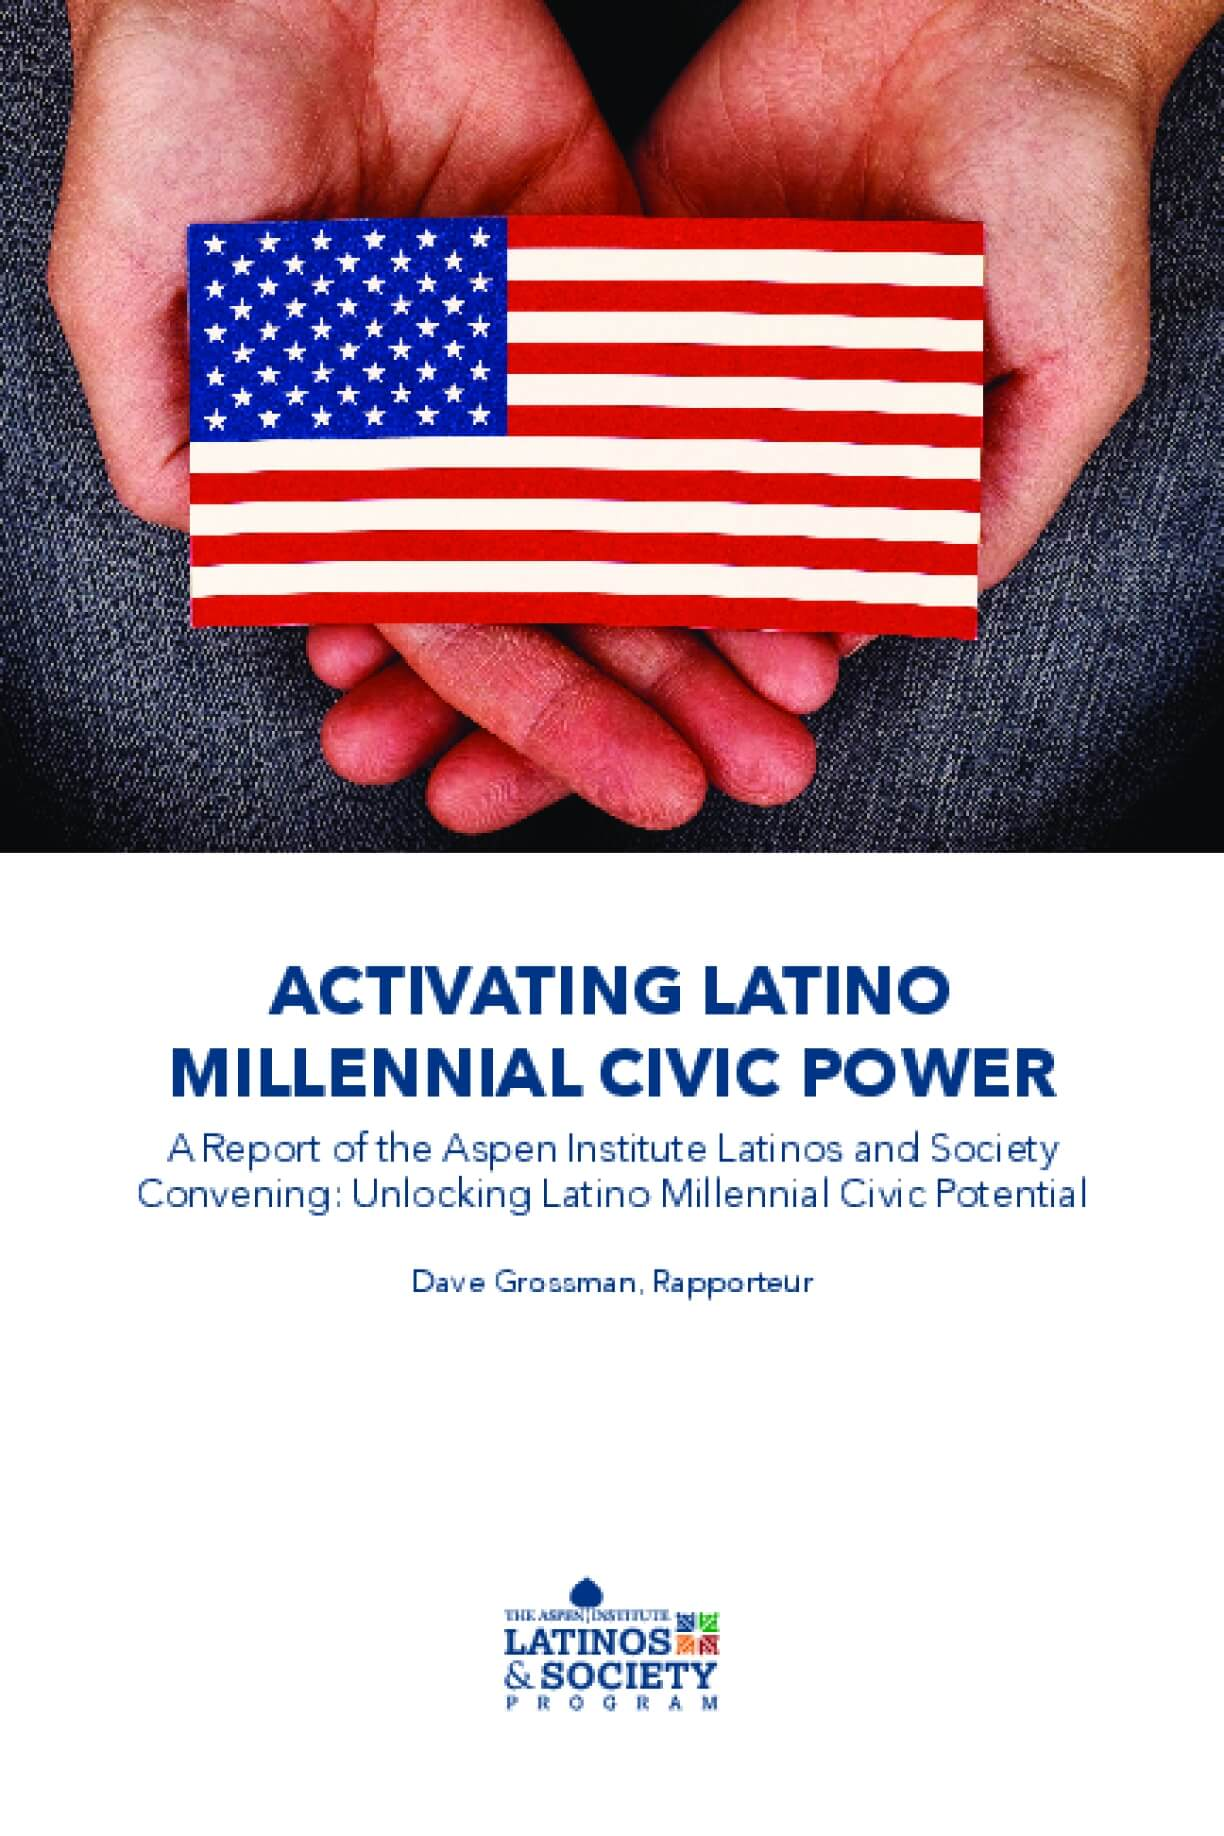 Activating Latino Millennial Civic Power: A Report of the Aspen Institute Latinos and Society Convening - Unlocking Latino Millennial Civic Potential